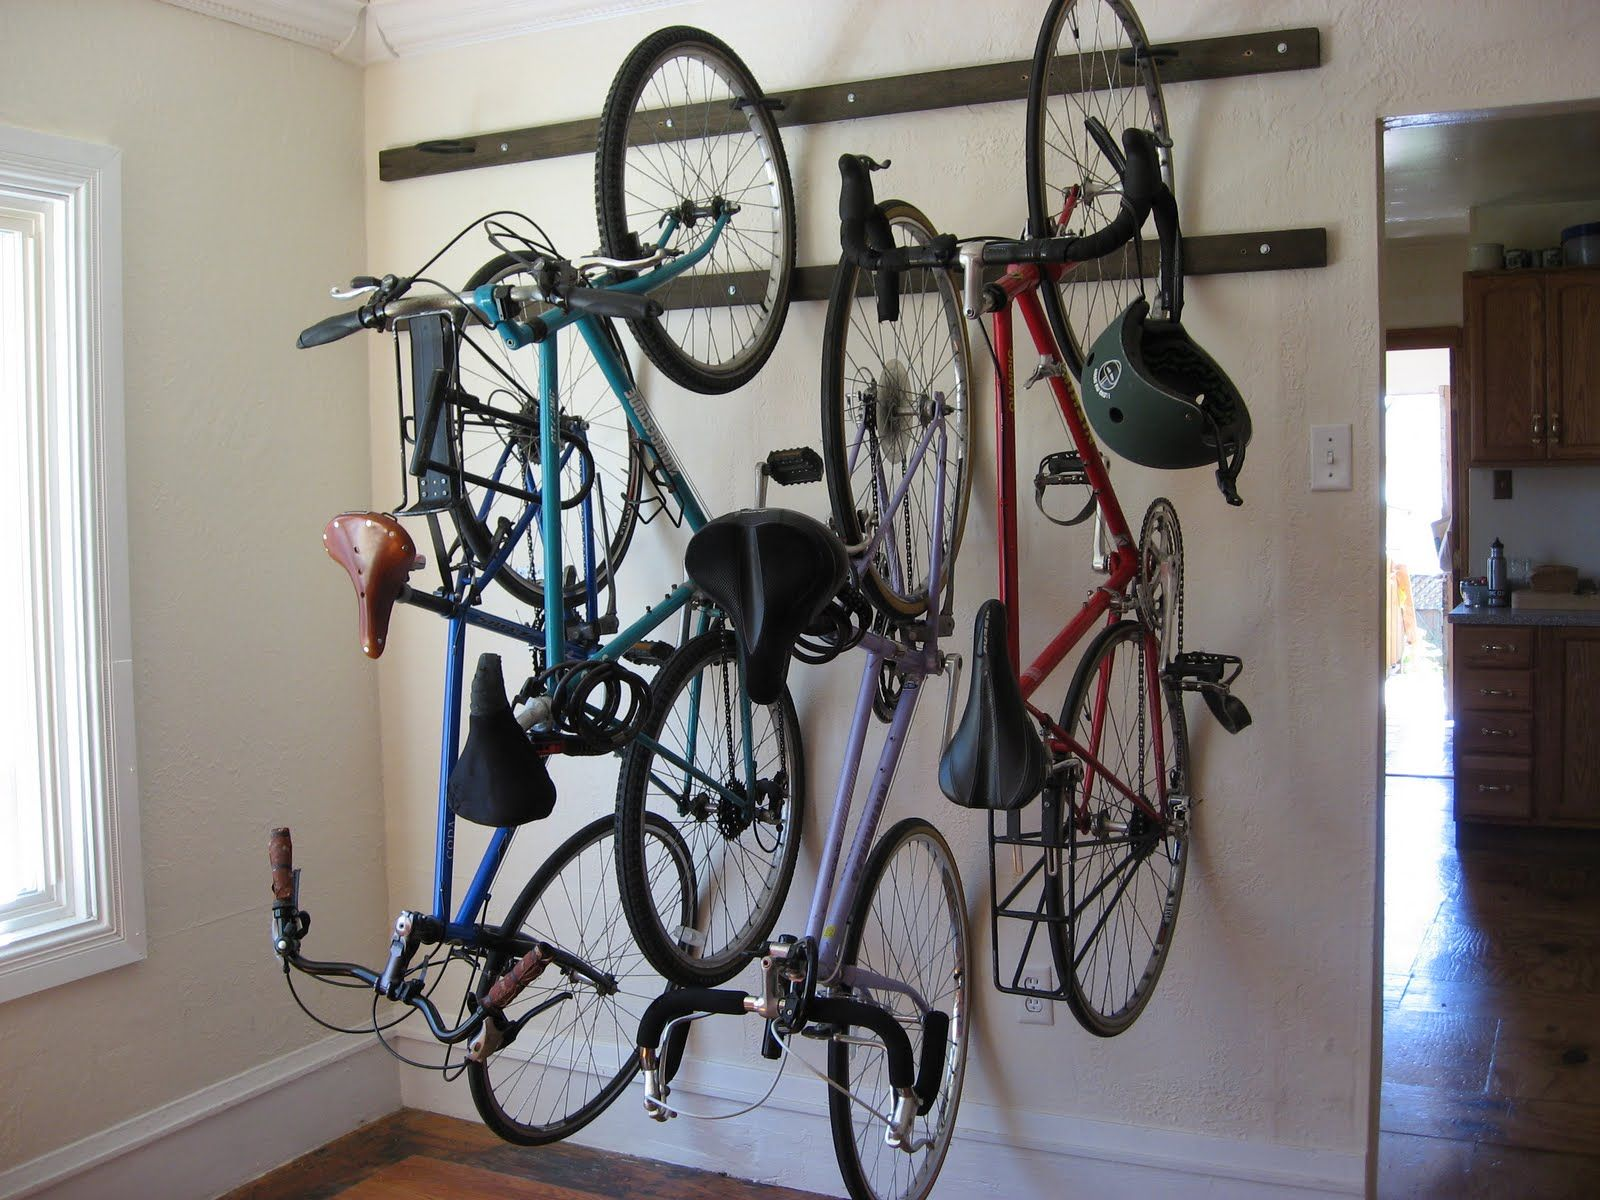 Space Saving Garage Bike Storage Bicycles As Art Cool Upcycled Cycle Rack Space Saving And